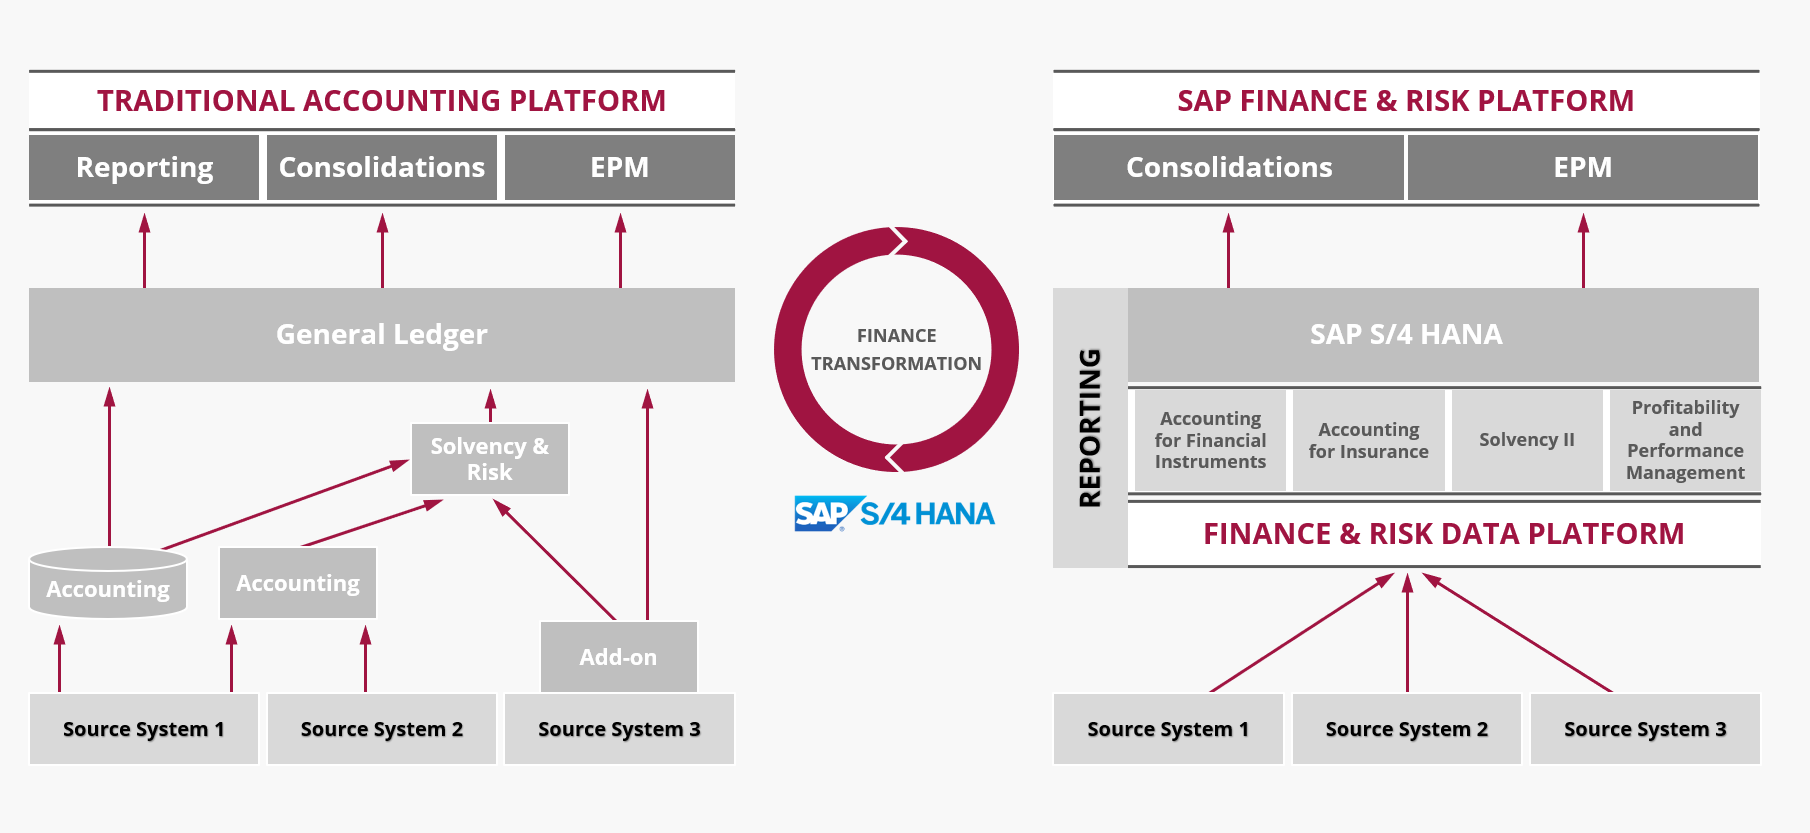 SAP FPSL Finance & Risk Platform